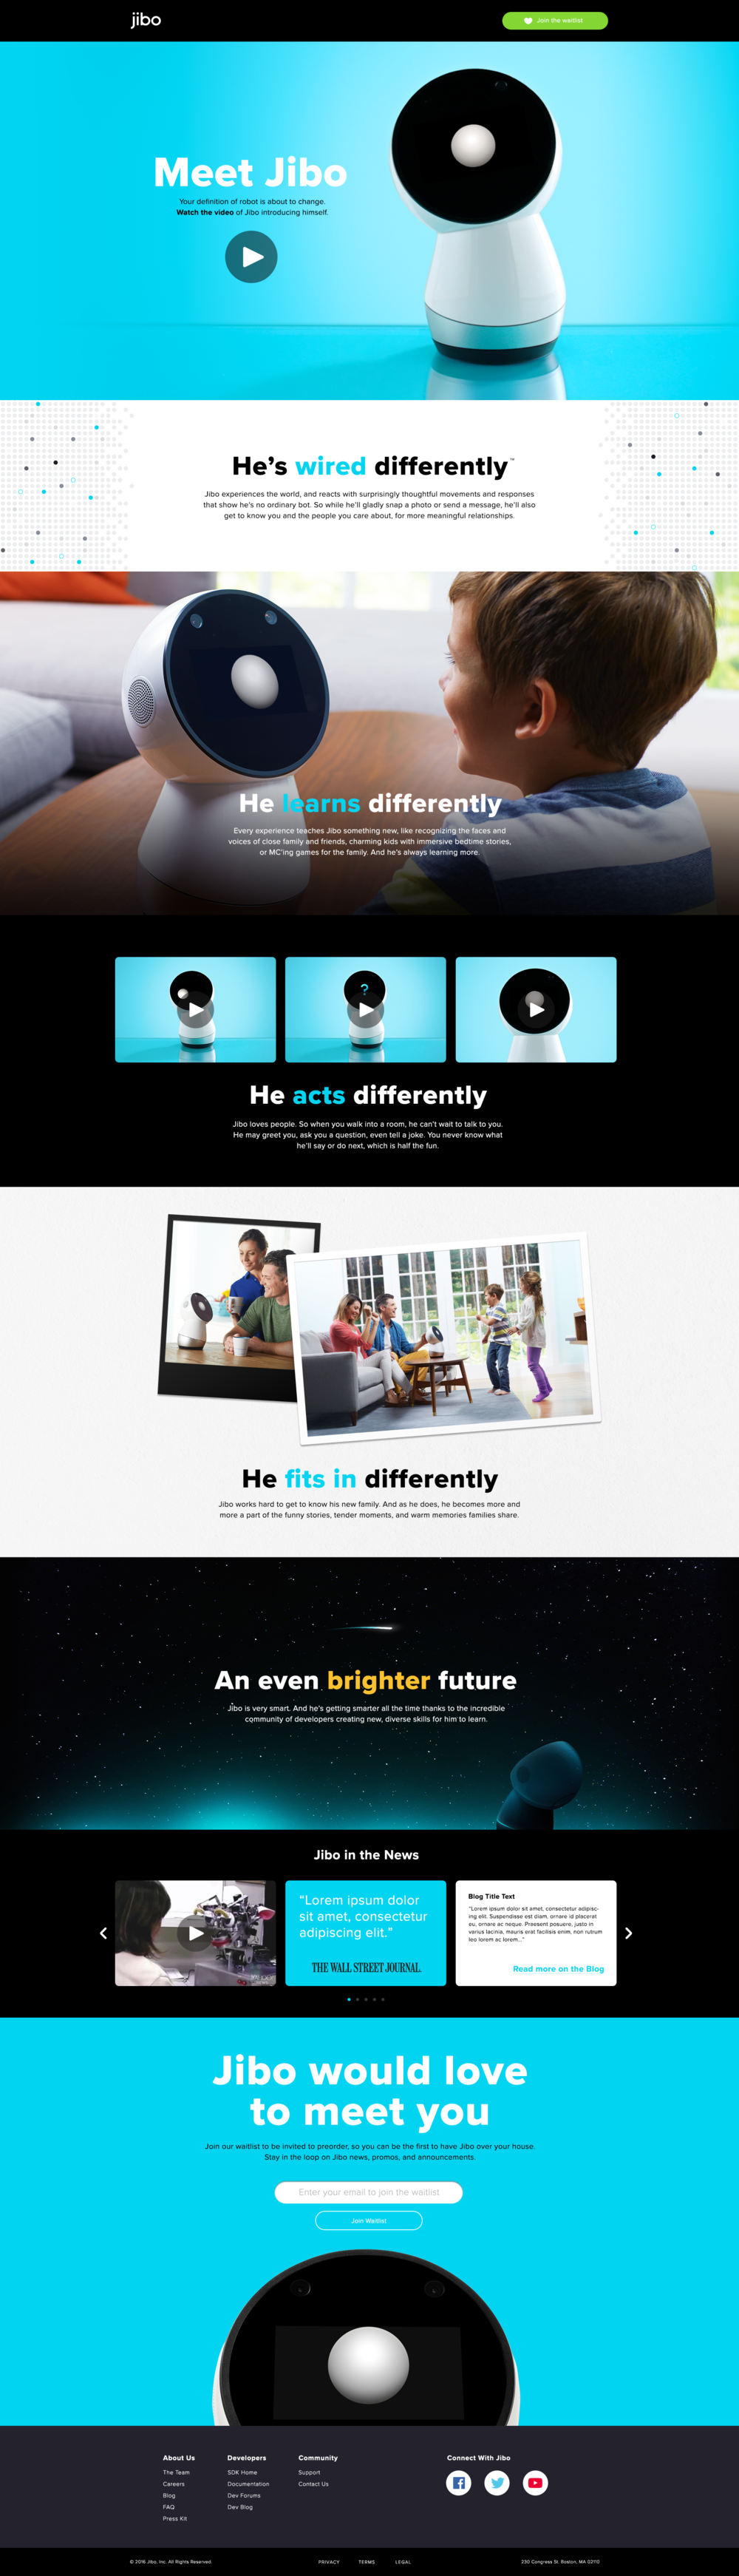 Worked closely with marketing, developers to design Jibo's pre-launch website